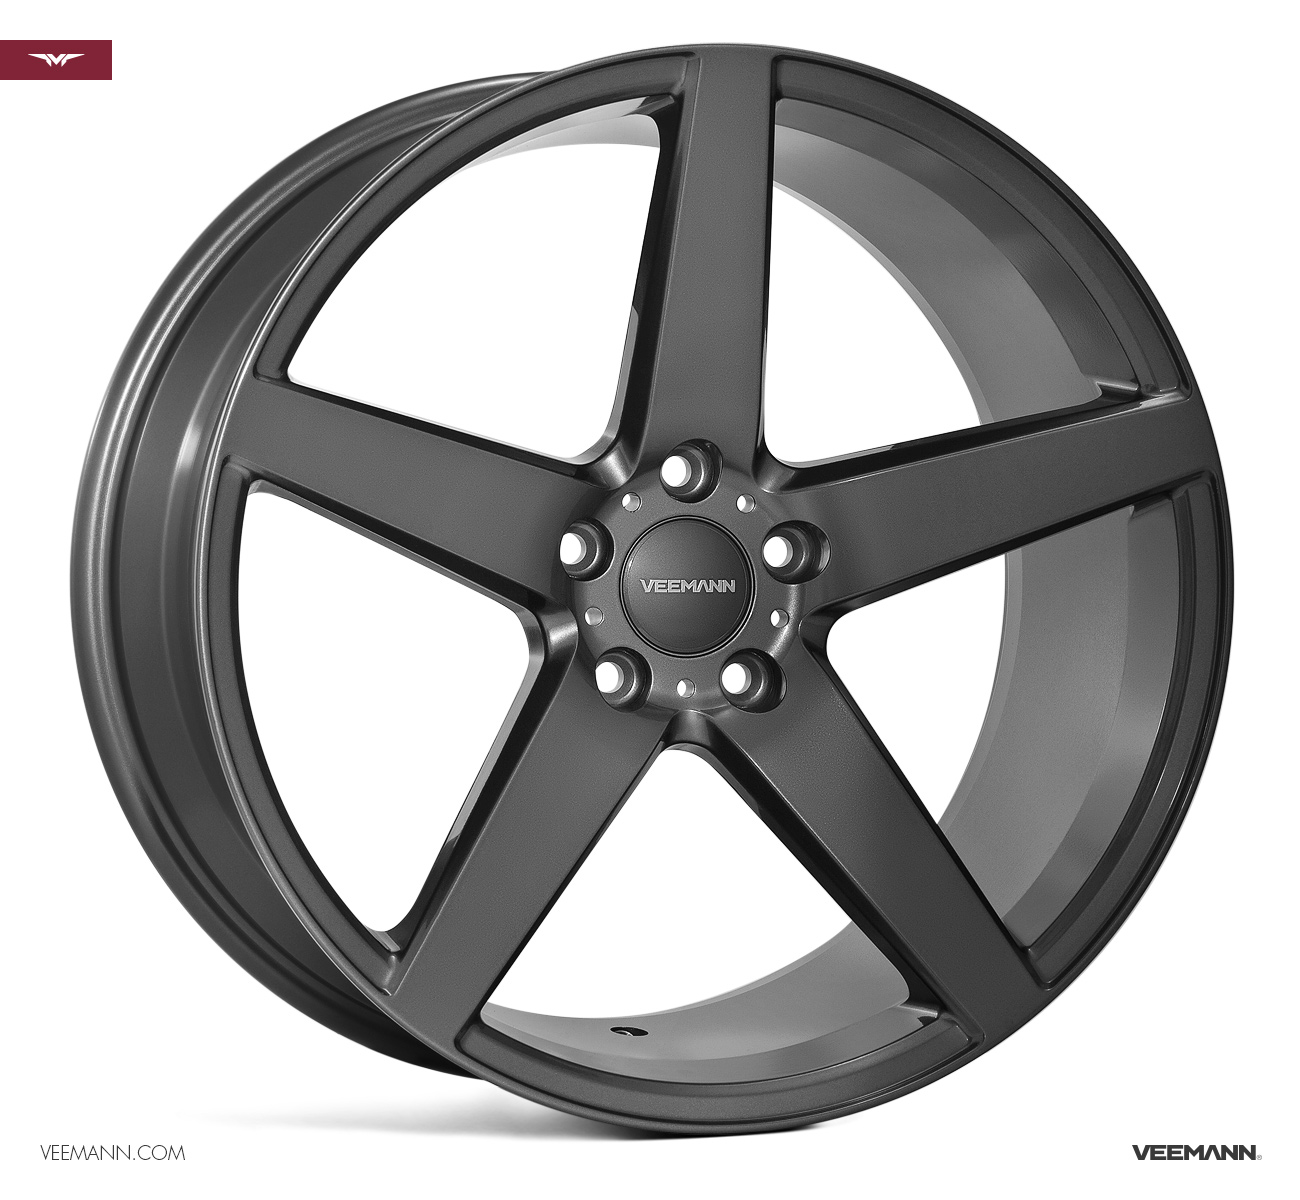 "NEW 22"" VEEMANN V-FS8 ALLOYS IN GLOSS GRAPHITE WITH DEEPER CONCAVE 12"" REARS"